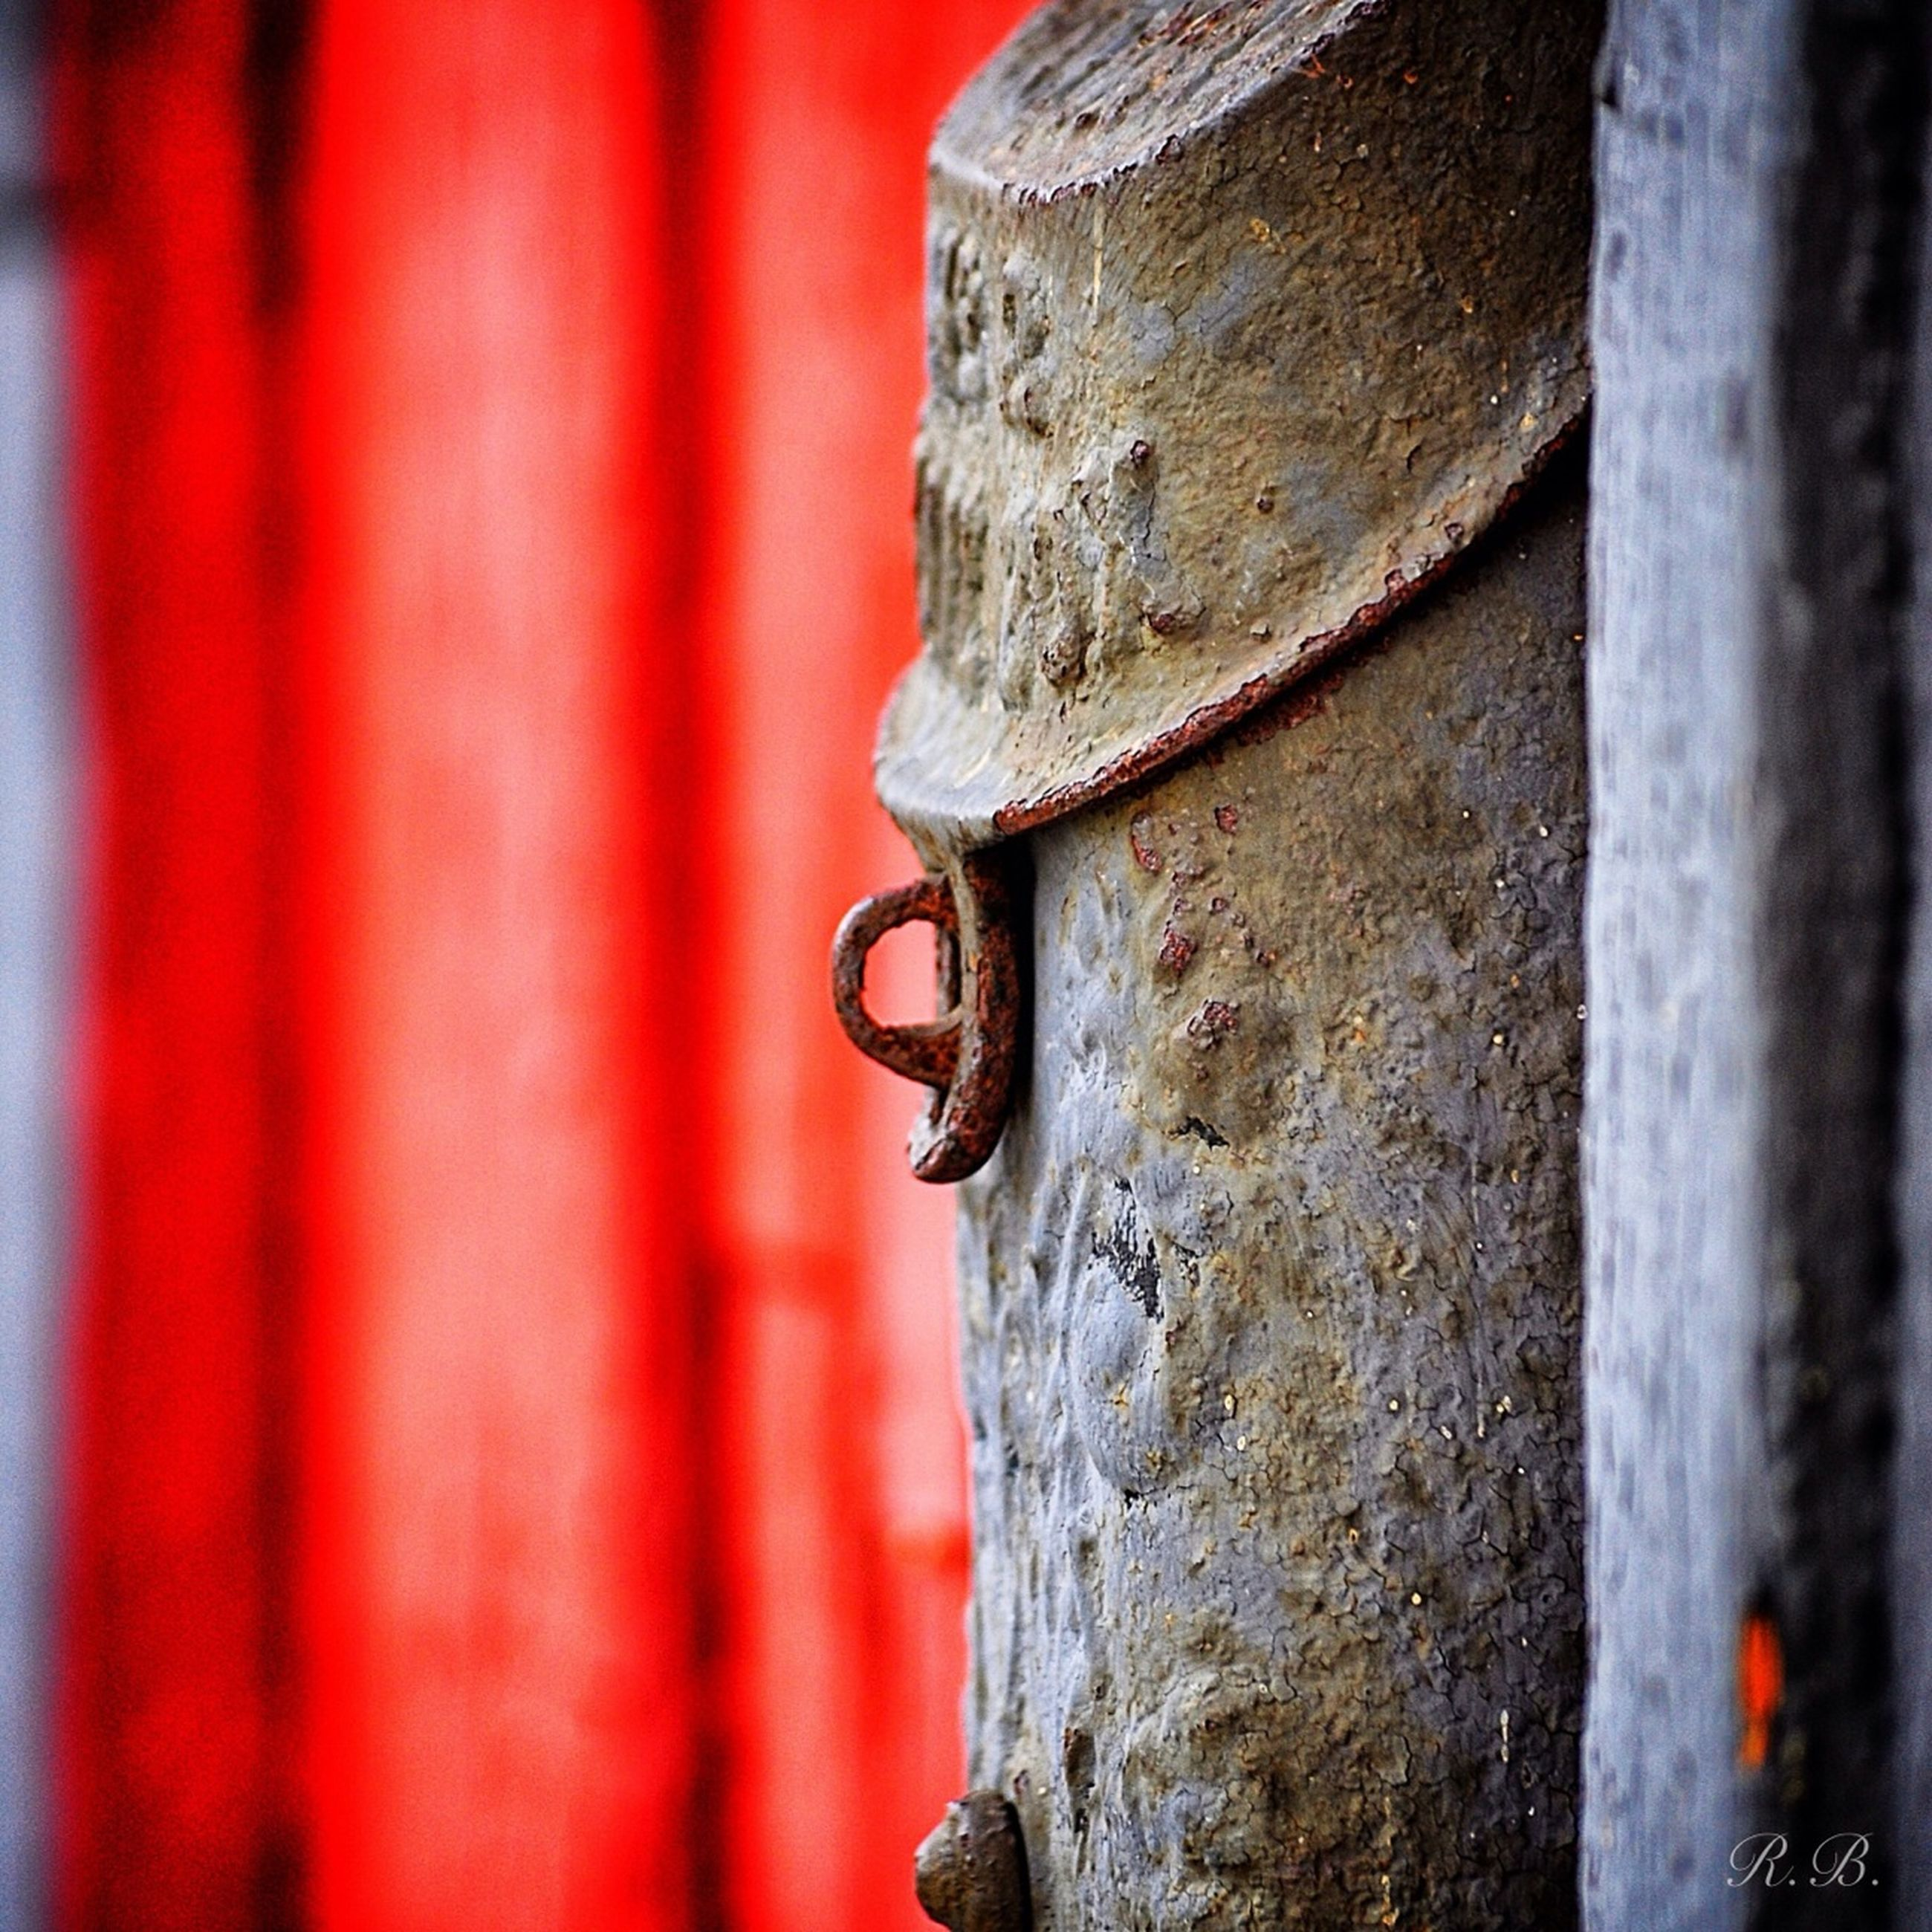 textured, close-up, weathered, old, red, focus on foreground, built structure, architecture, wall - building feature, history, rough, day, outdoors, detail, no people, selective focus, building exterior, low angle view, stone material, part of